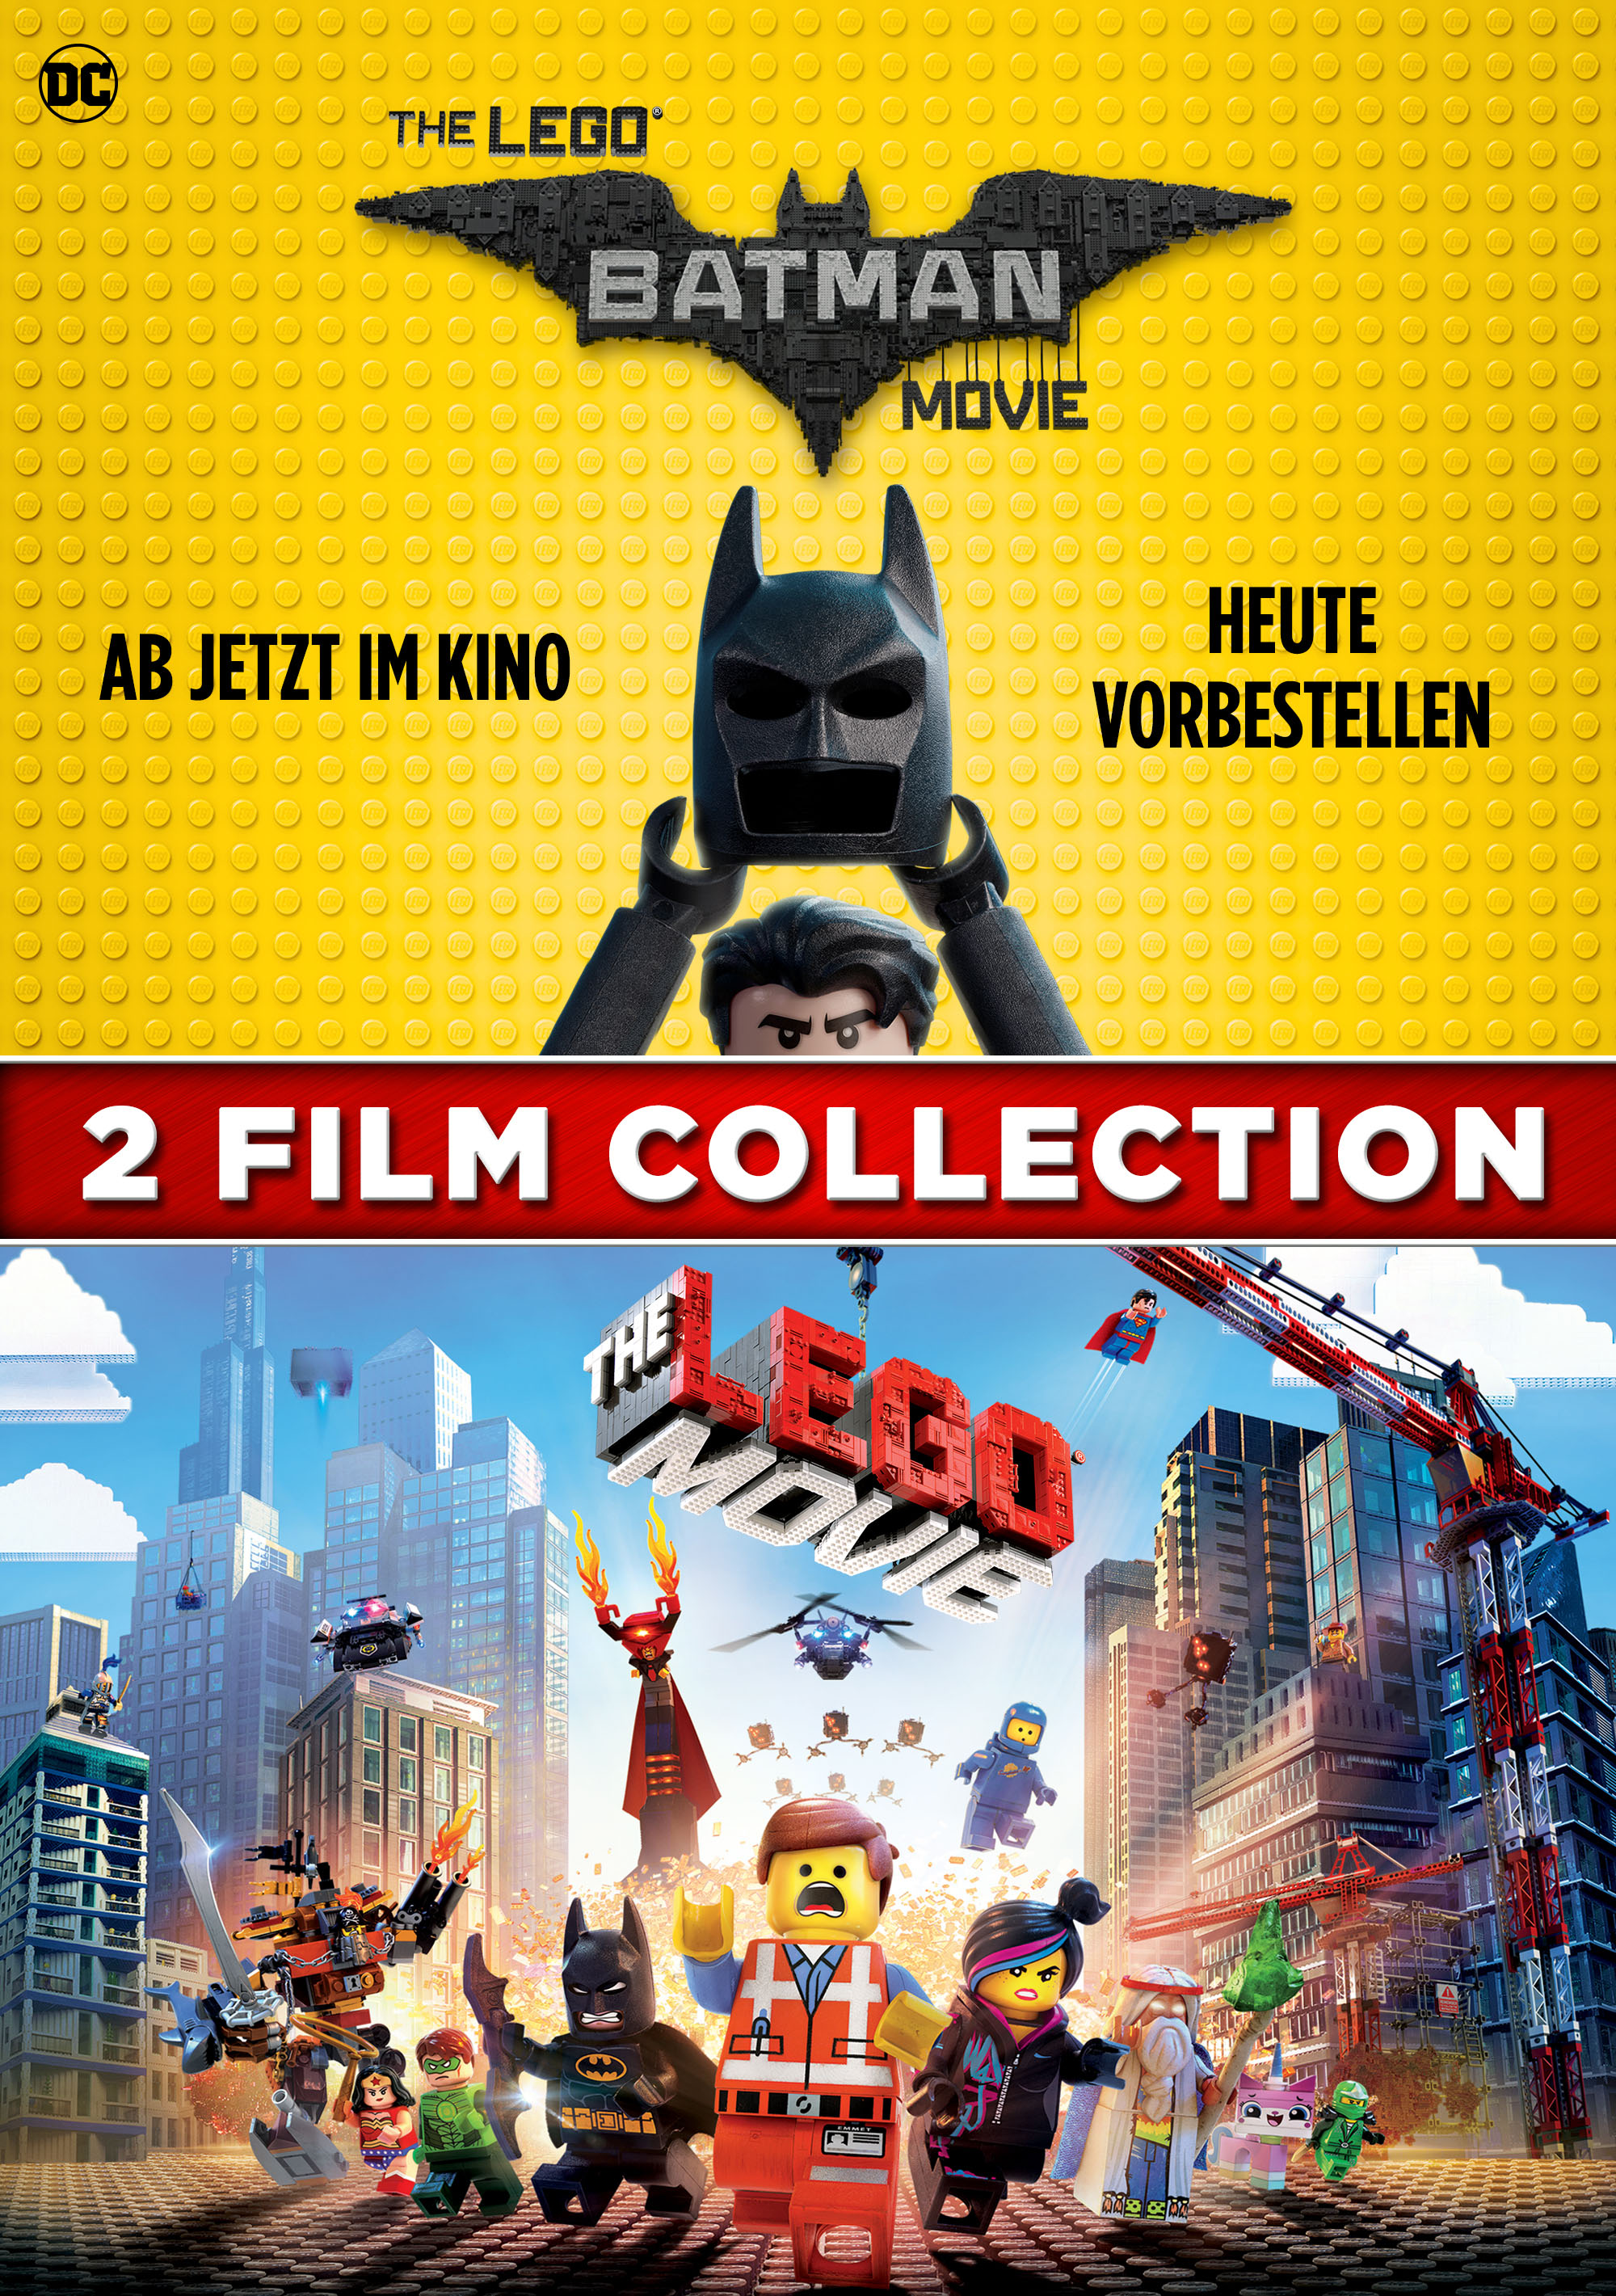 The LEGO Batman Movie/The LEGO Movie 2 Film Collection stream